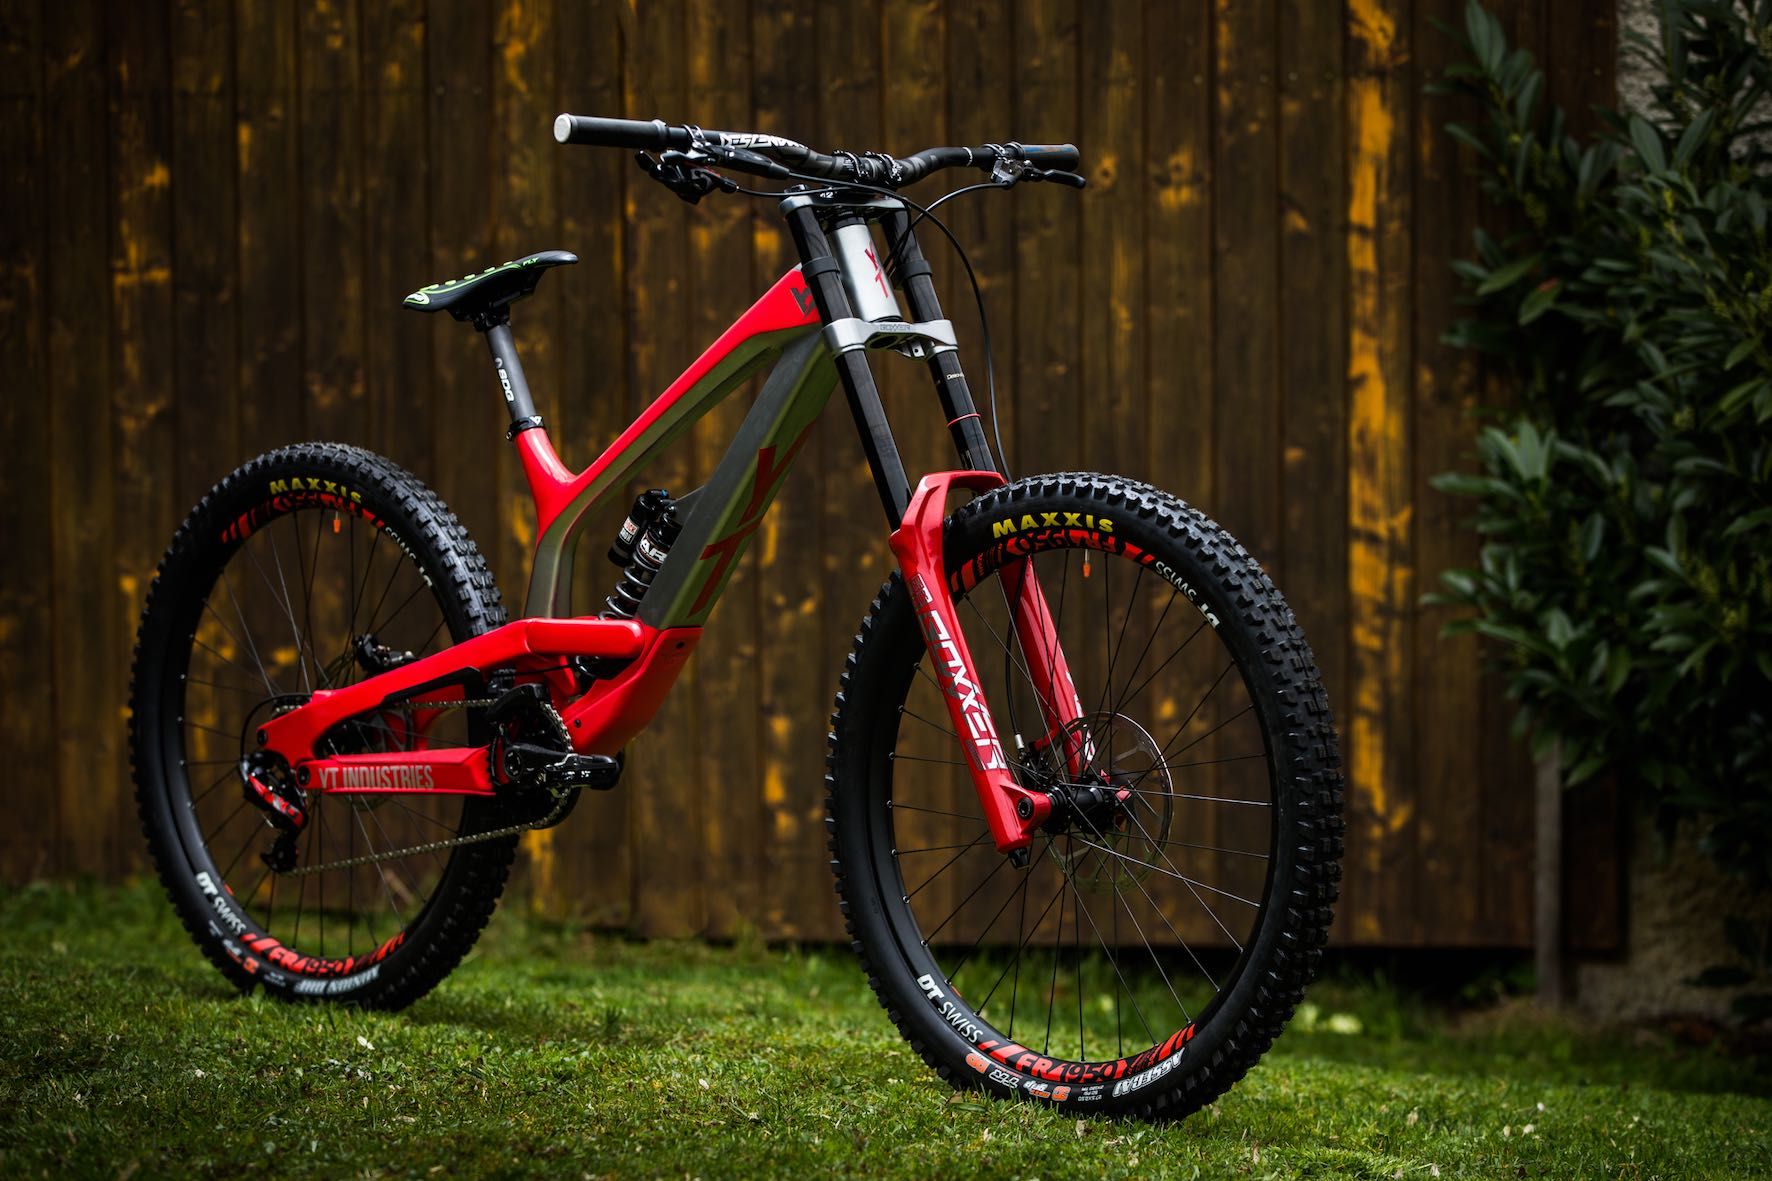 Bike check with Johann Potgieter and his 2019 YT Industries TUES Downhill MTB